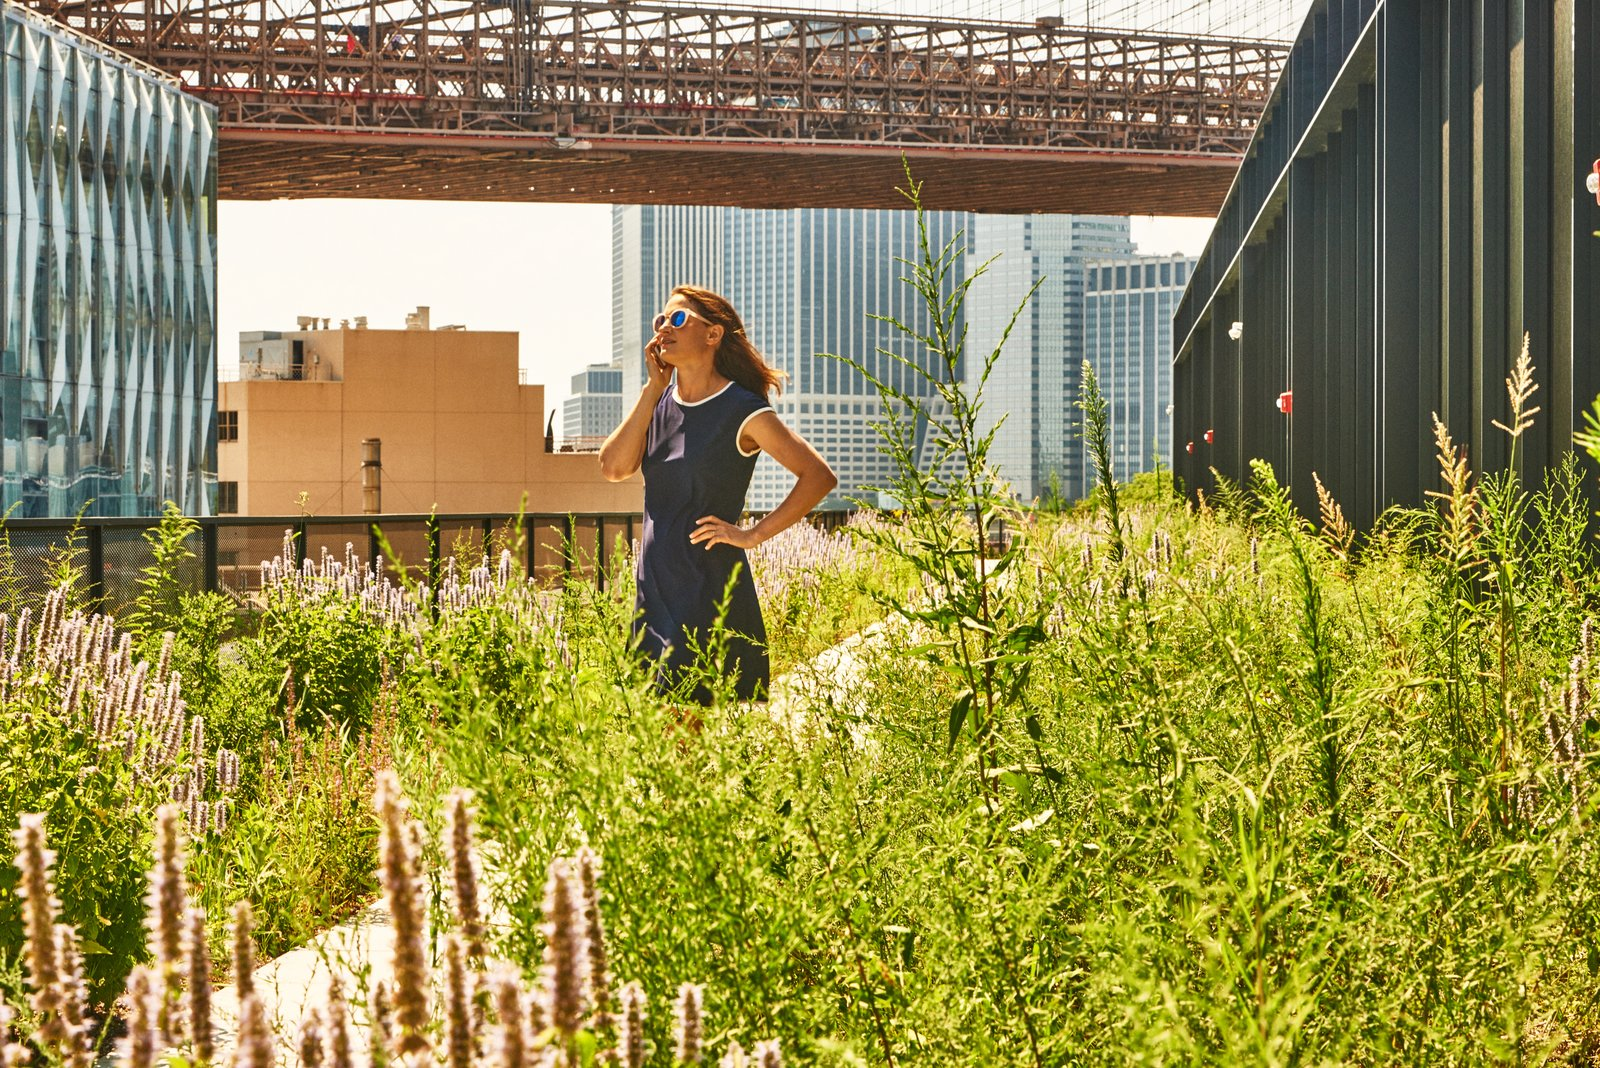 Photo 5 of 14 in A Brooklyn-Based Landscape Firm That's Reshaping New York City's Green Urban Scene